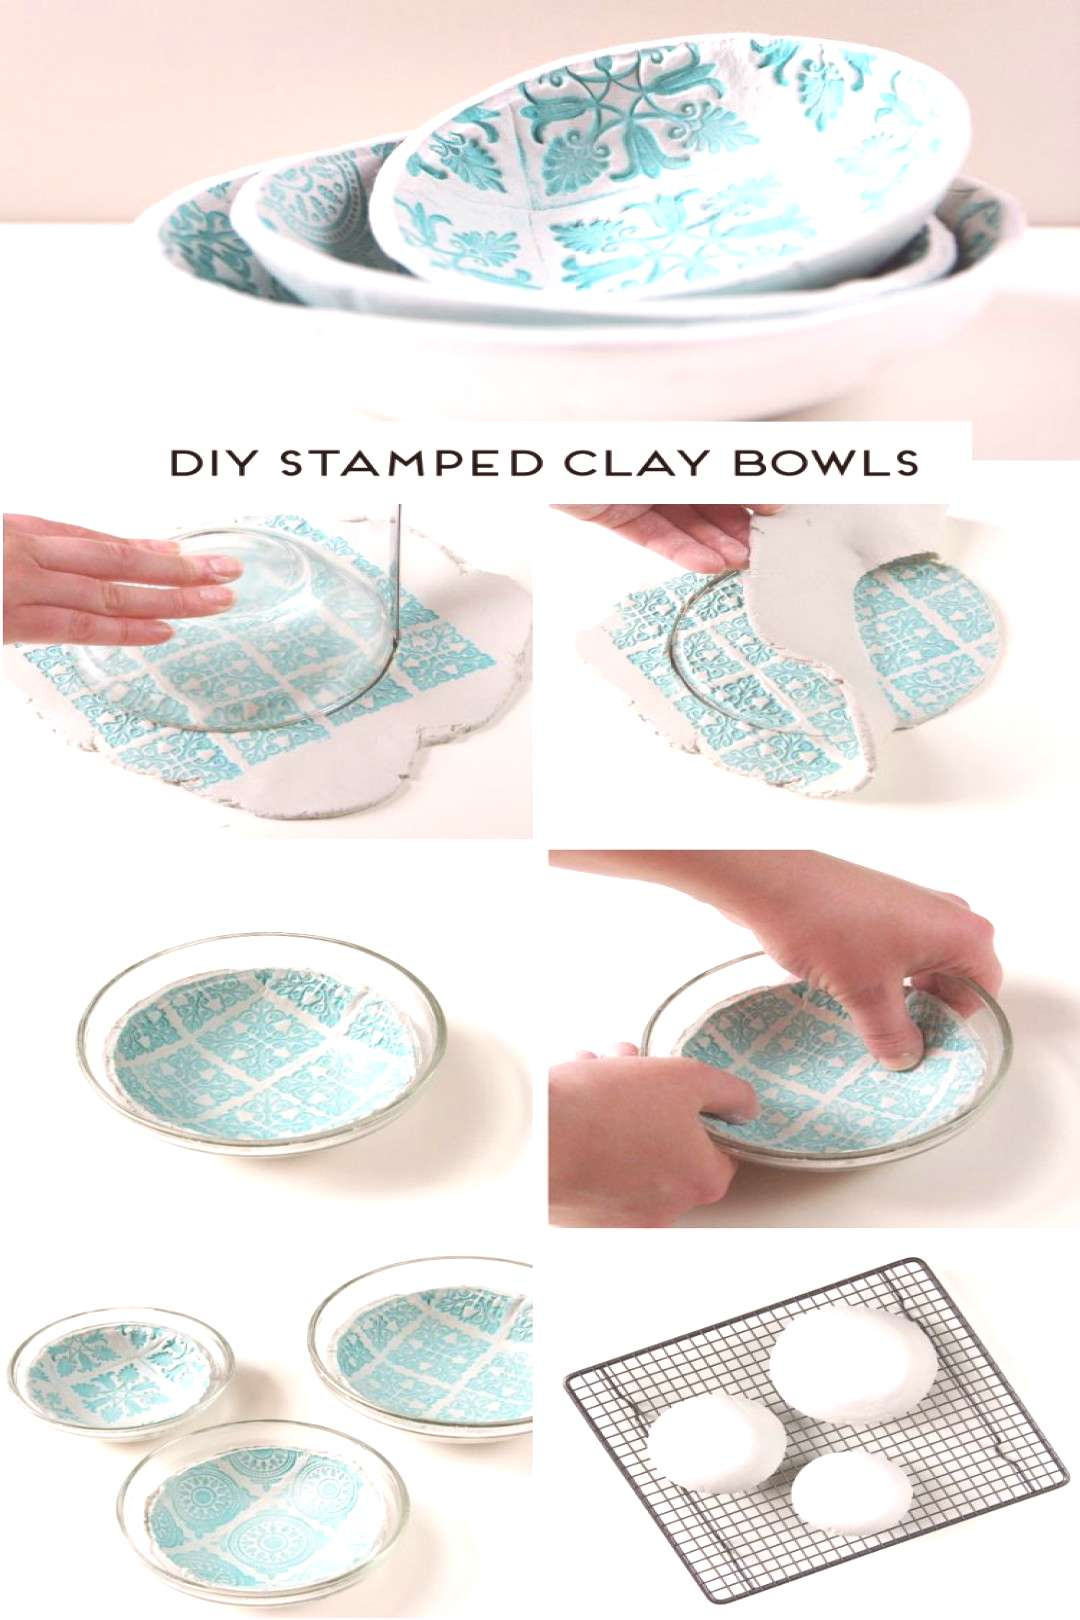 MAKE YOUR OWN DIY STAMPED CLAY BOWLS USING AIR DRY CLAY Learn how to make your own beautiful stampe